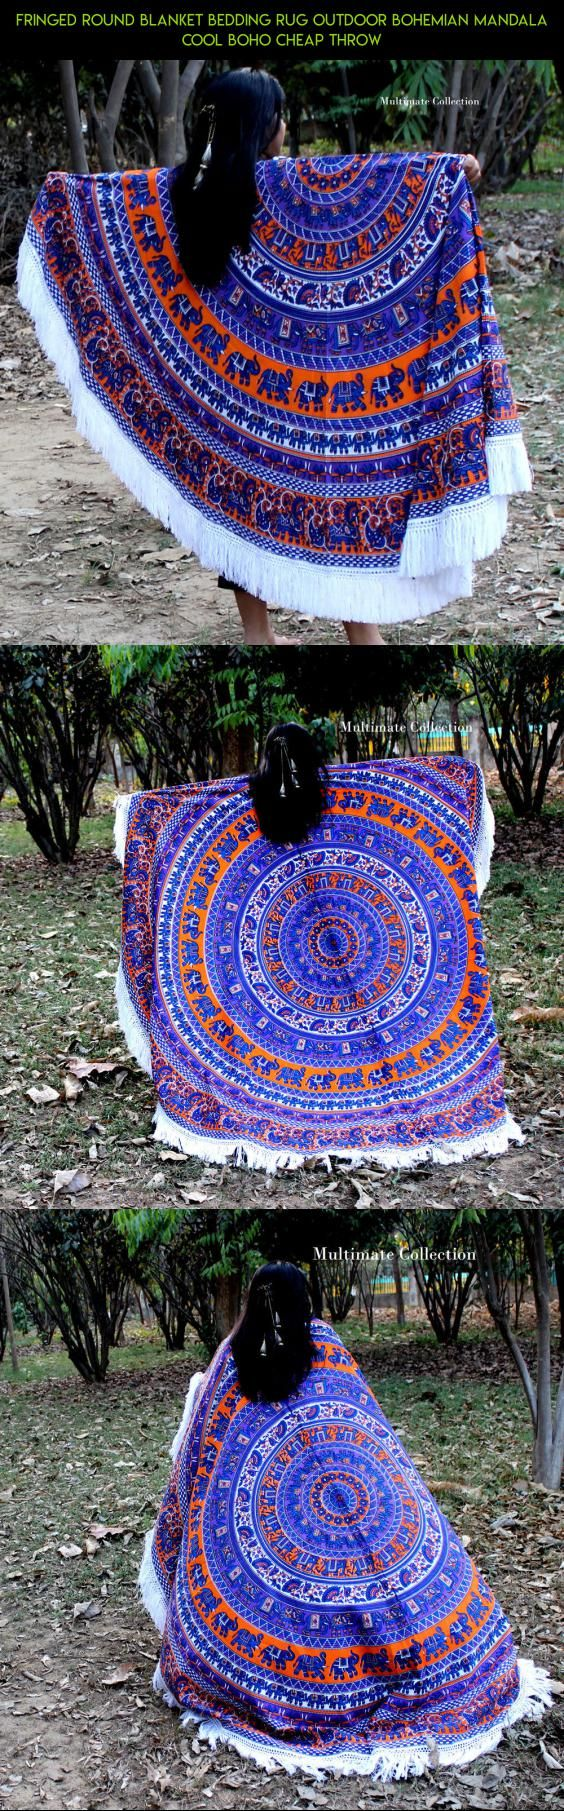 Fringed Round Blanket Bedding Rug outdoor Bohemian Mandala cool Boho Cheap Throw #products #cooling #technology #fpv #outdoor #tech #shopping #camera #drone #bed #kit #racing #gadgets #plans #parts